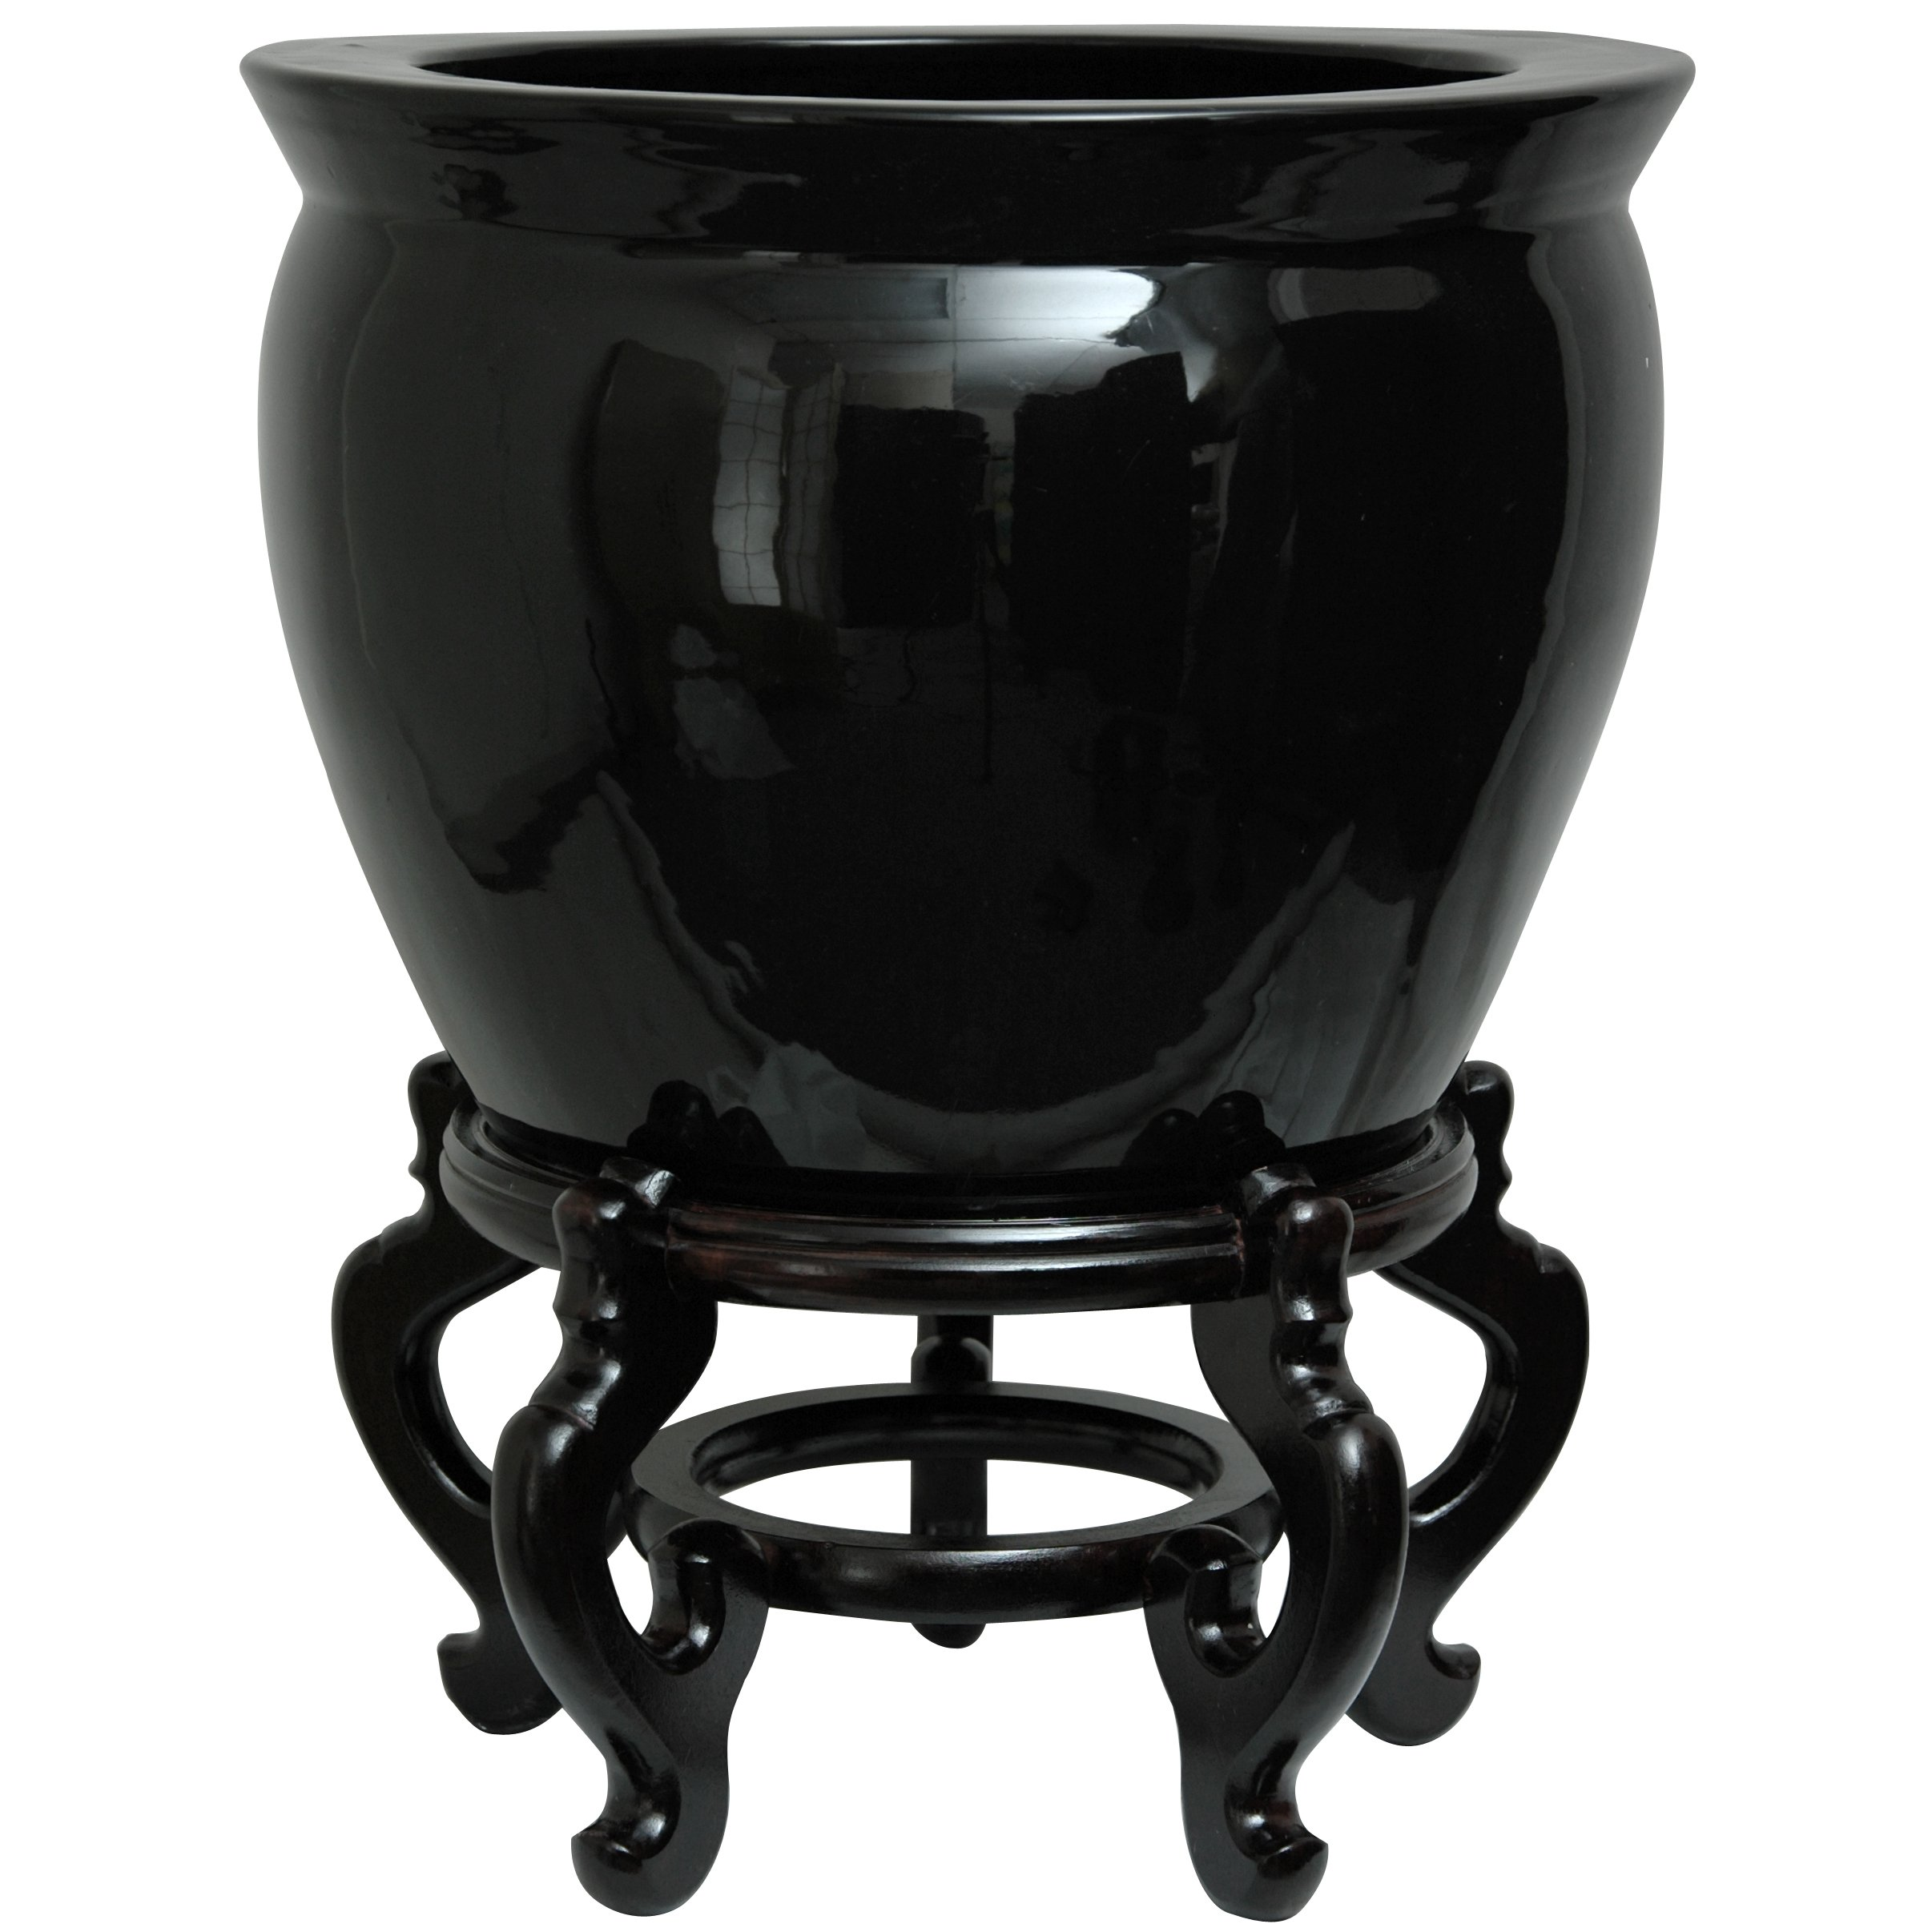 Oriental Furniture 14'' Solid Black Porcelain Fishbowl by ORIENTAL FURNITURE